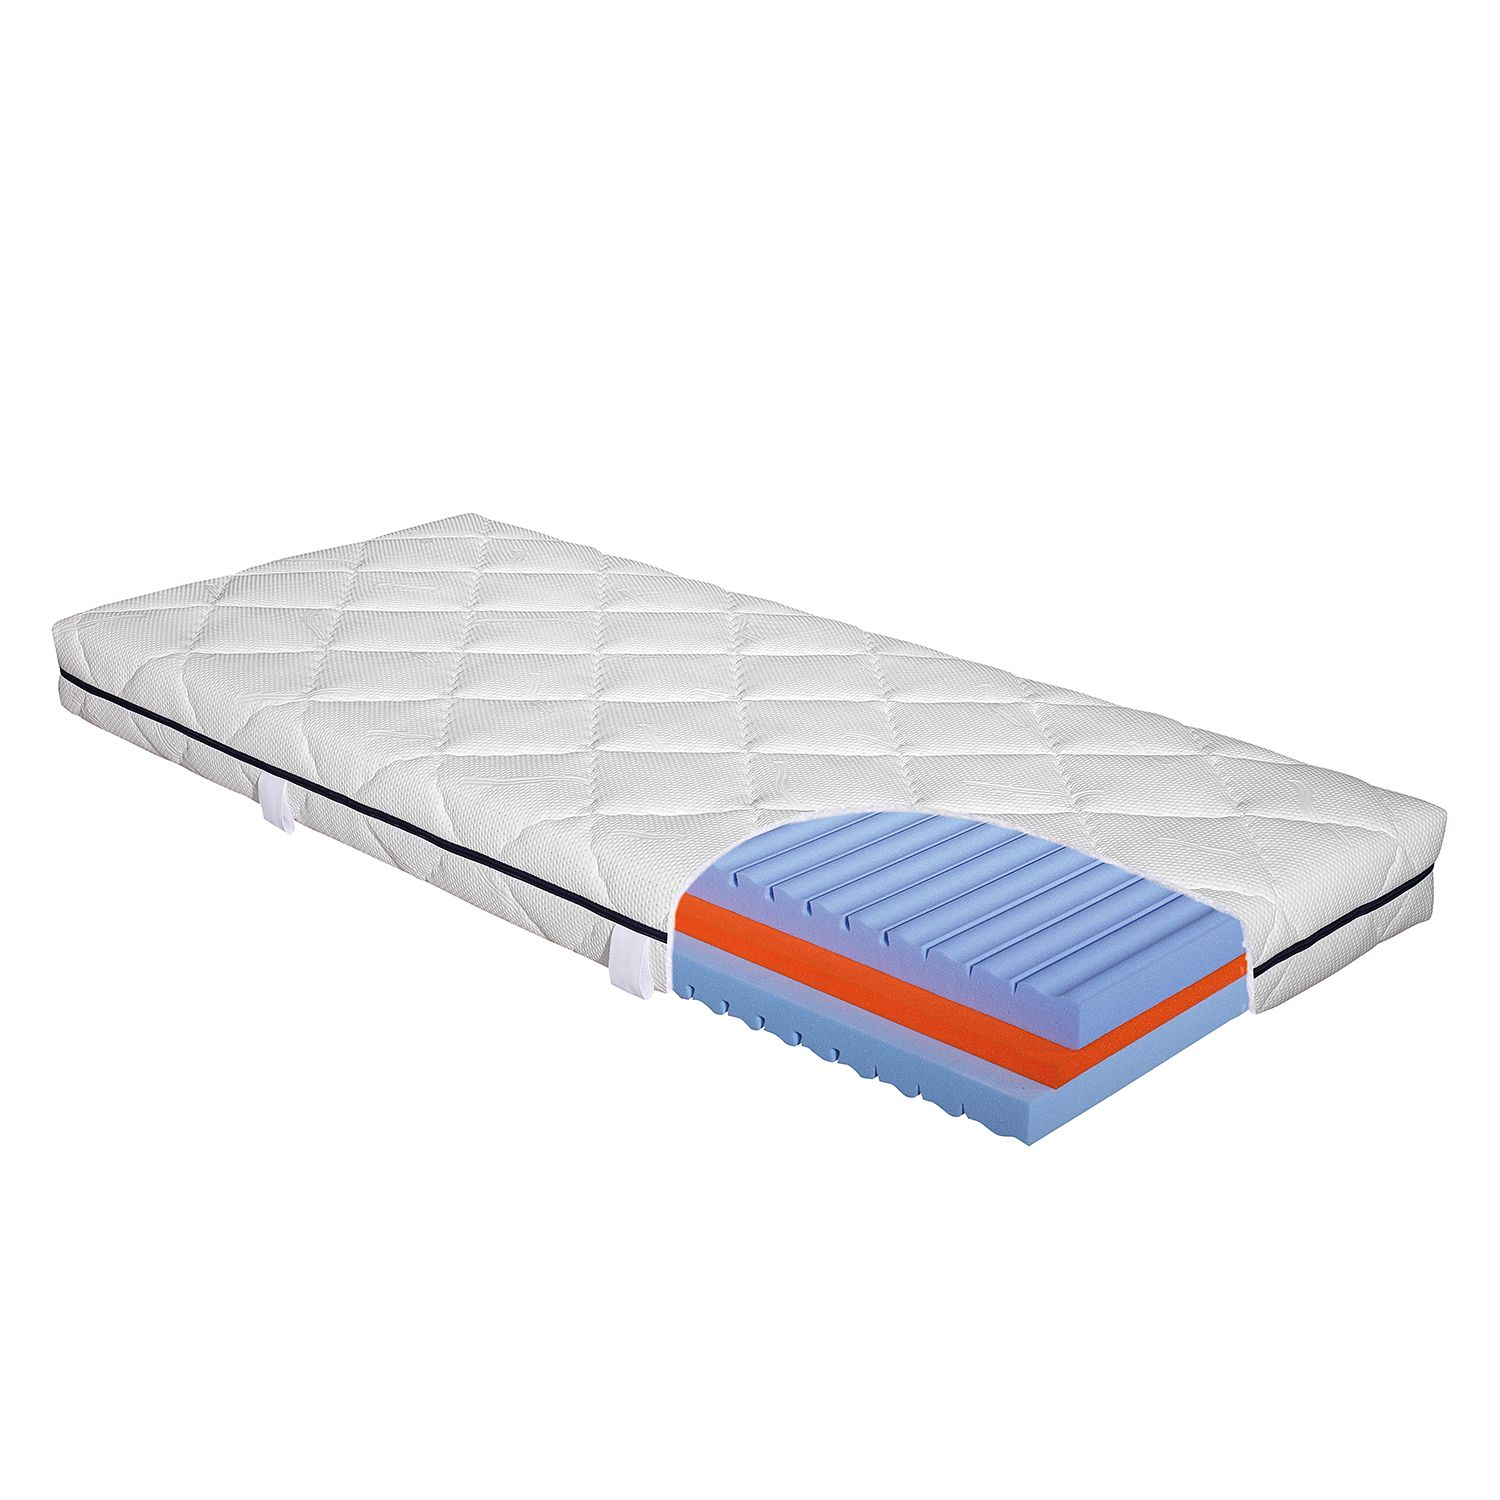 Matelas en mousse froide I Waterlily